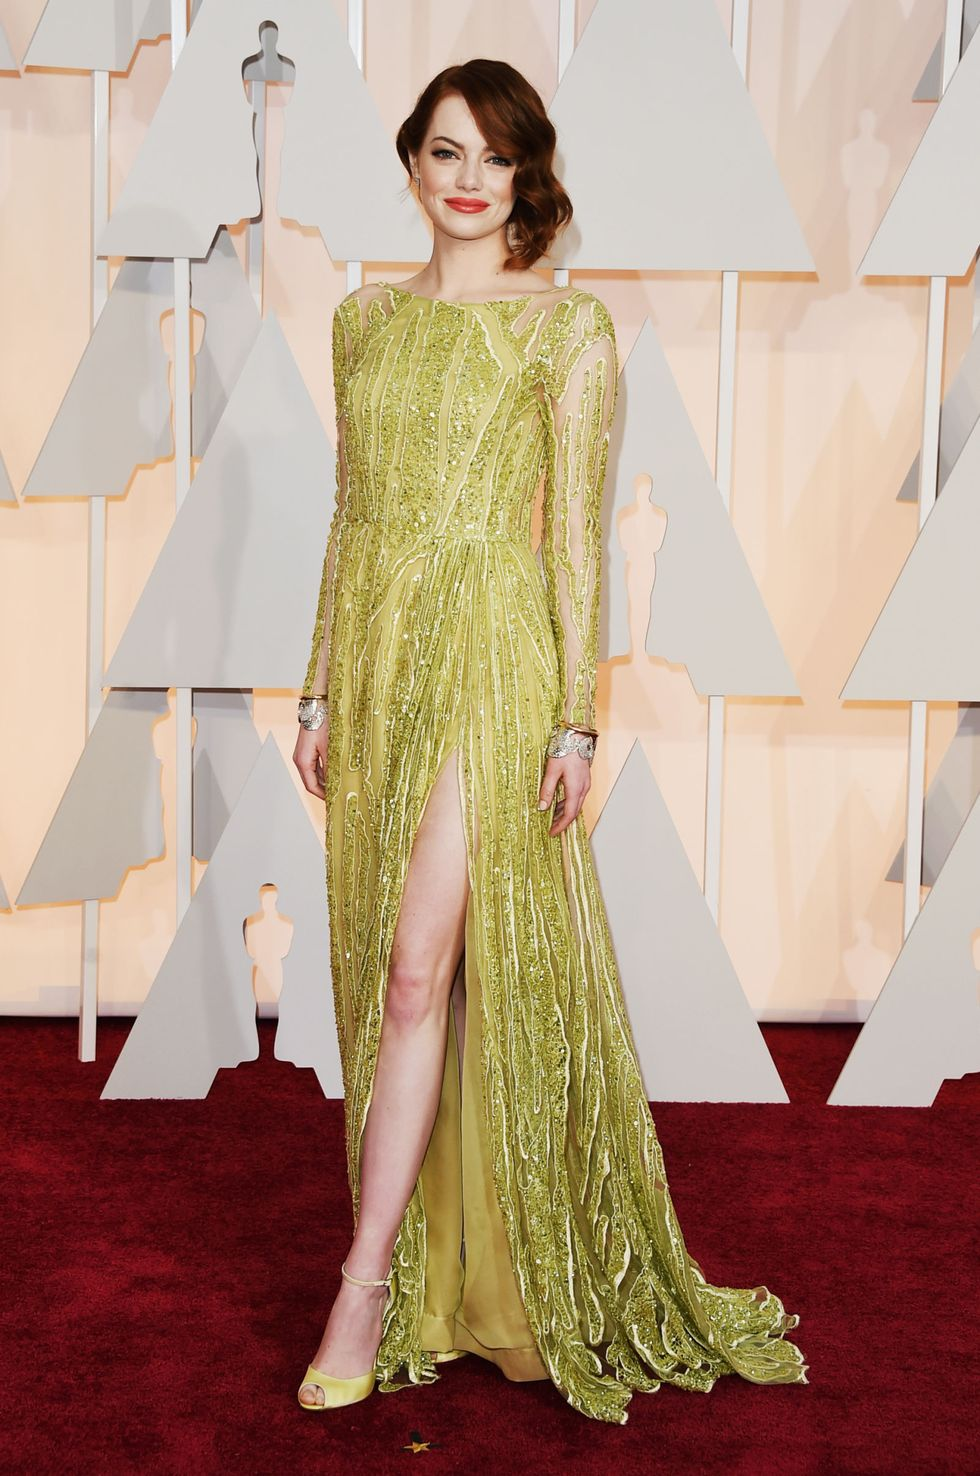 Emma Stone, 2015 One reason why we're thrilled Emma Stone ended up landing the role in La La Land : her auburn hair naturally vibes with the colorful frocks she chooses for red carpet events. Here, she's wearing a risk-taking Elie Saab gown in mustard yellow that 100-percent pays off.